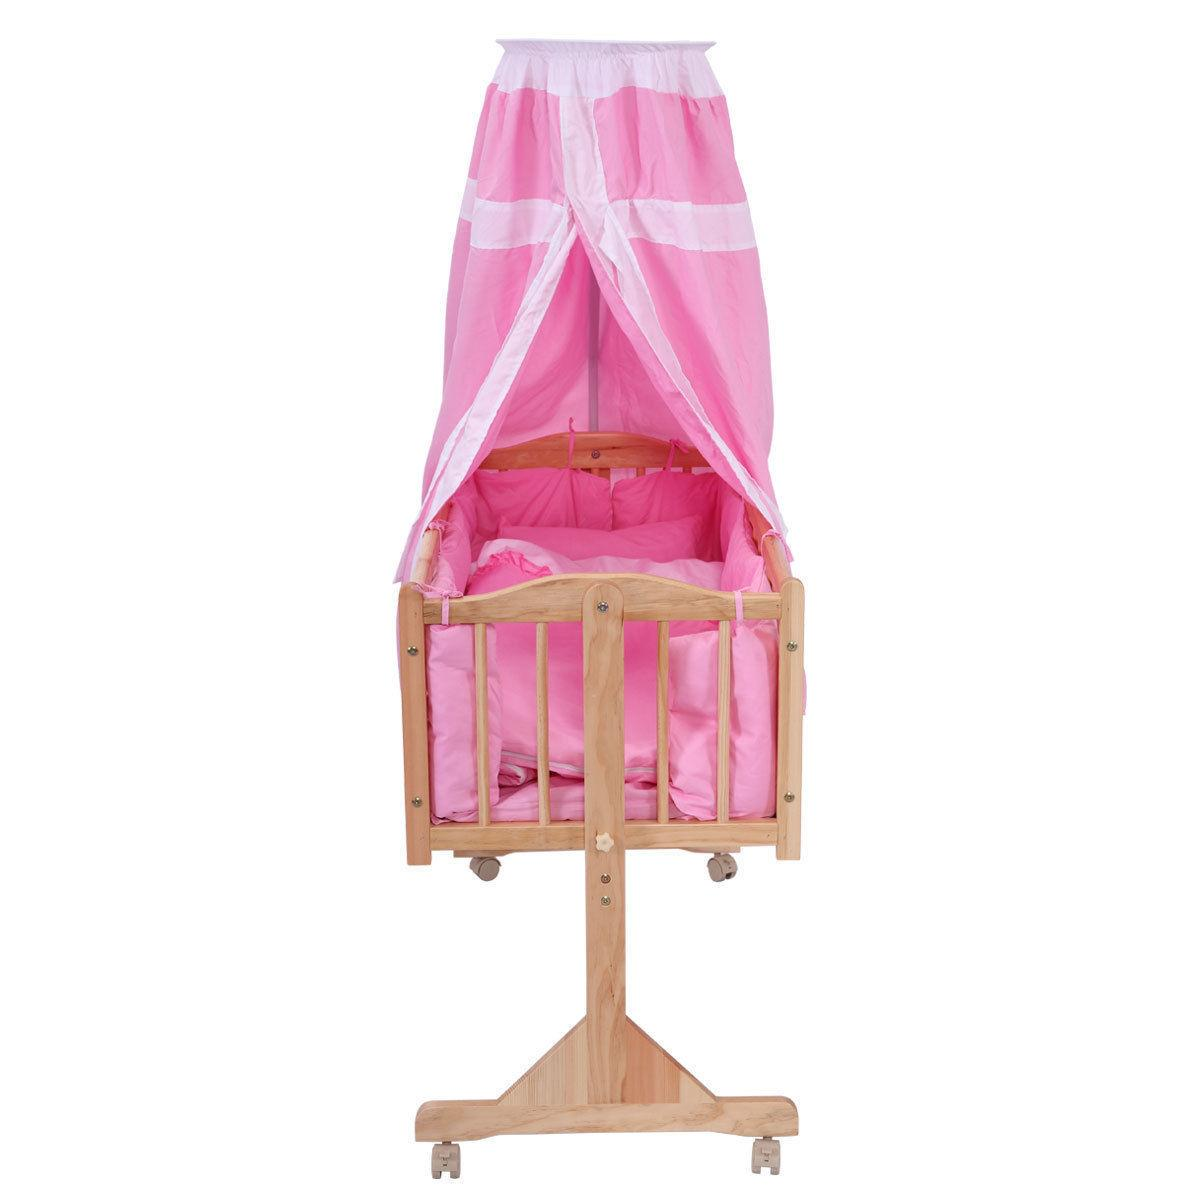 Pine Wood Baby Toddler Bed Furniture Safety